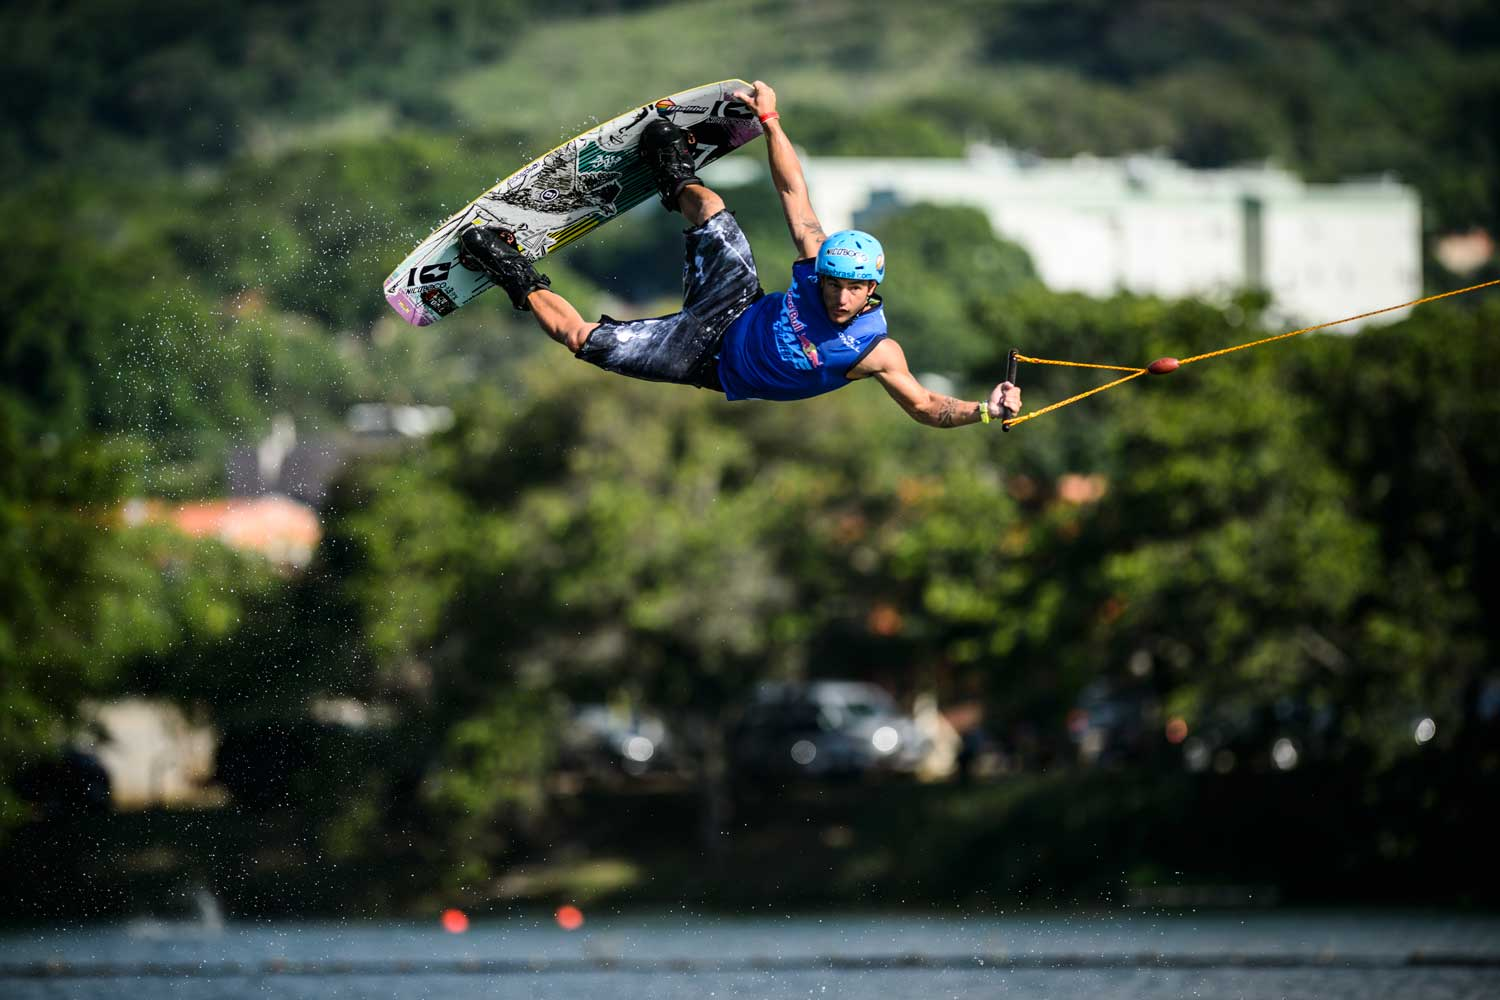 A professional wakeboarder practicing tricks on the open water.